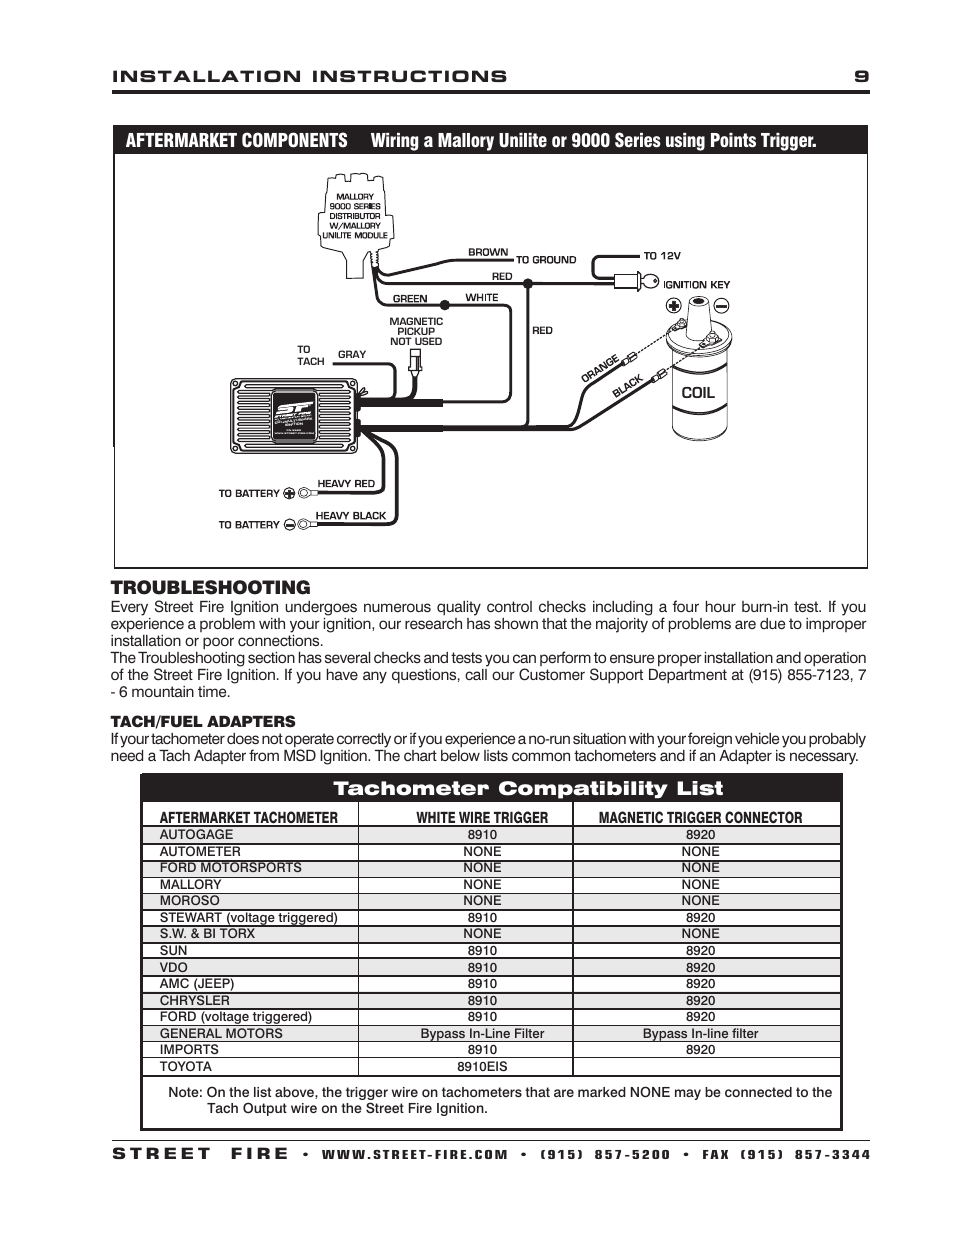 msd street fire wiring diagram msd street fire hei ignition wiring diagram troubleshooting, tachometer compatibility list | msd 5520 ... #2